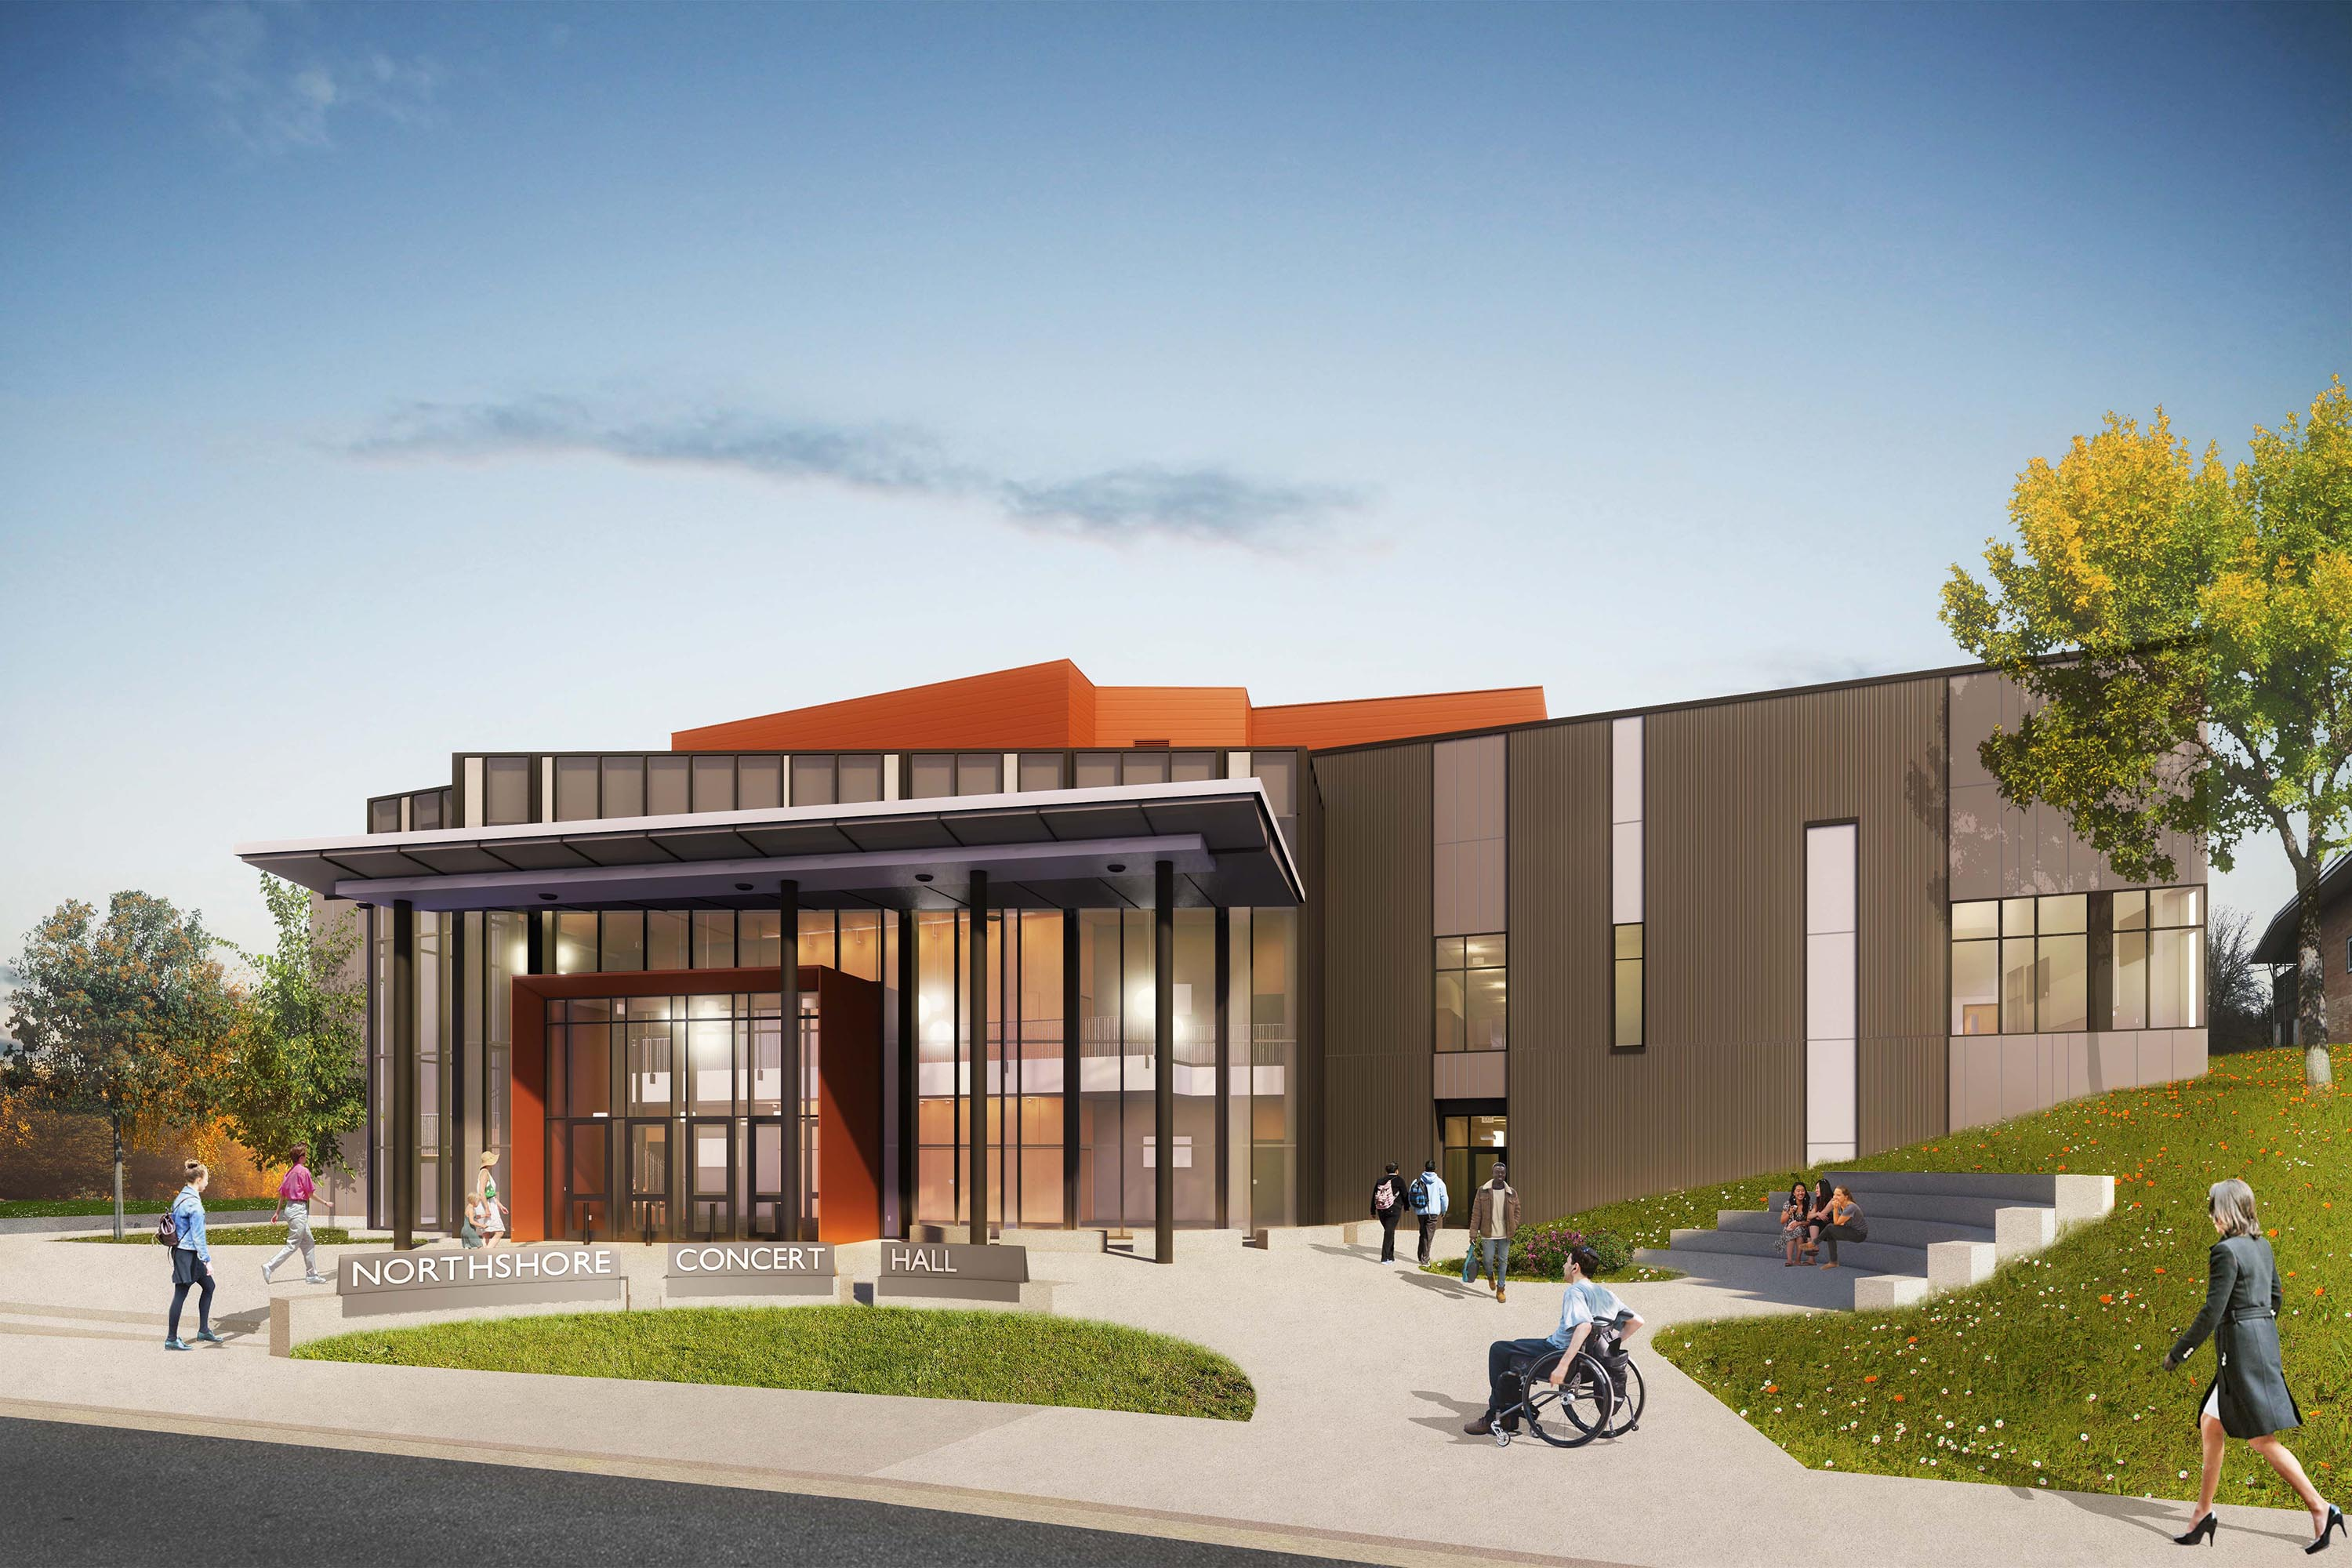 Exterior rendering of Northshore School District Concert Hall